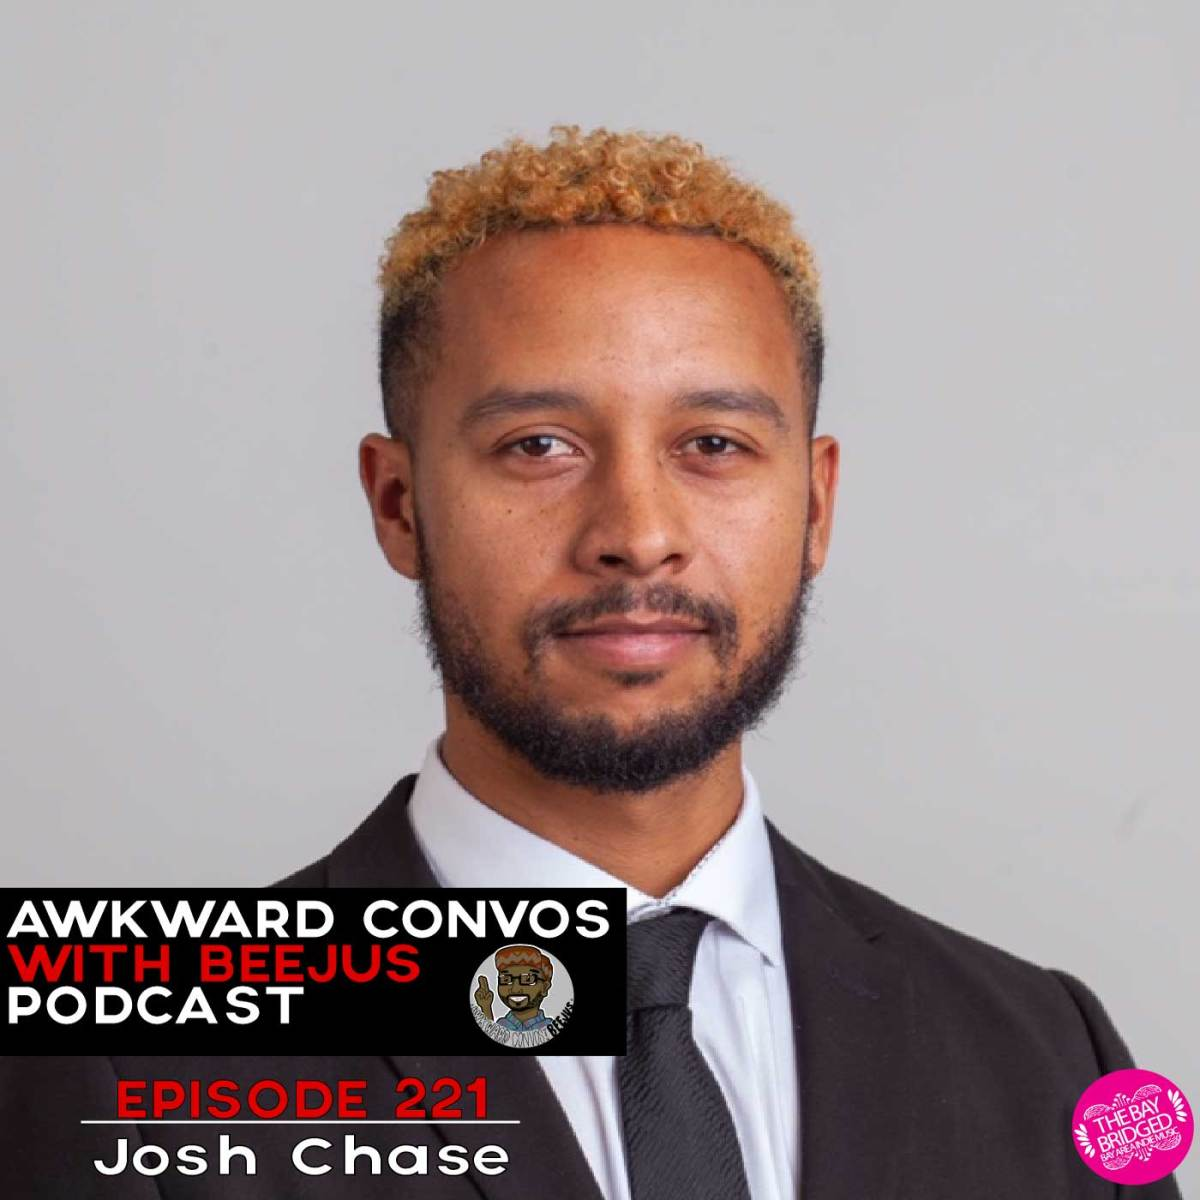 Awkward Convos with Beejus: Josh Chase